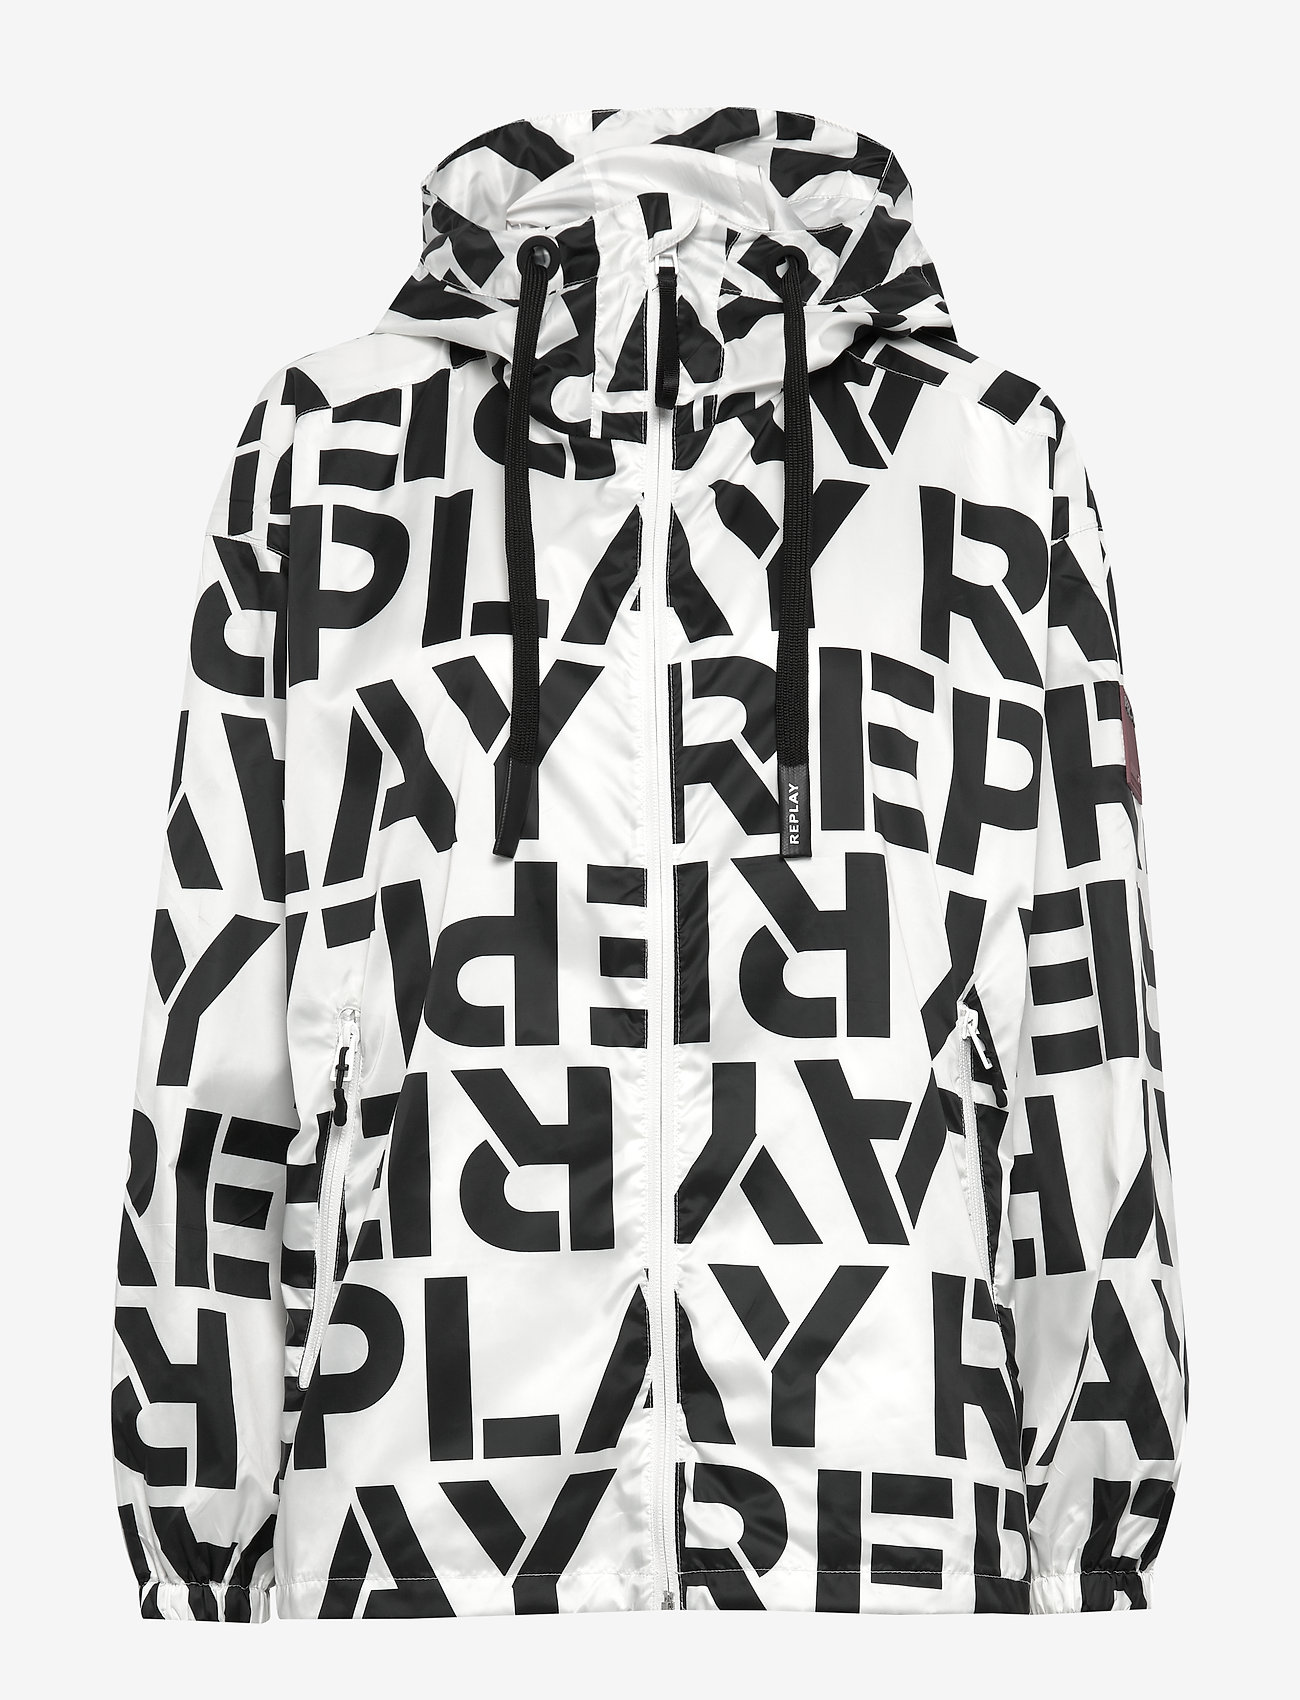 Jacket (Chalk&black Logo) (90.30 €) - Replay ELQMw3Q4